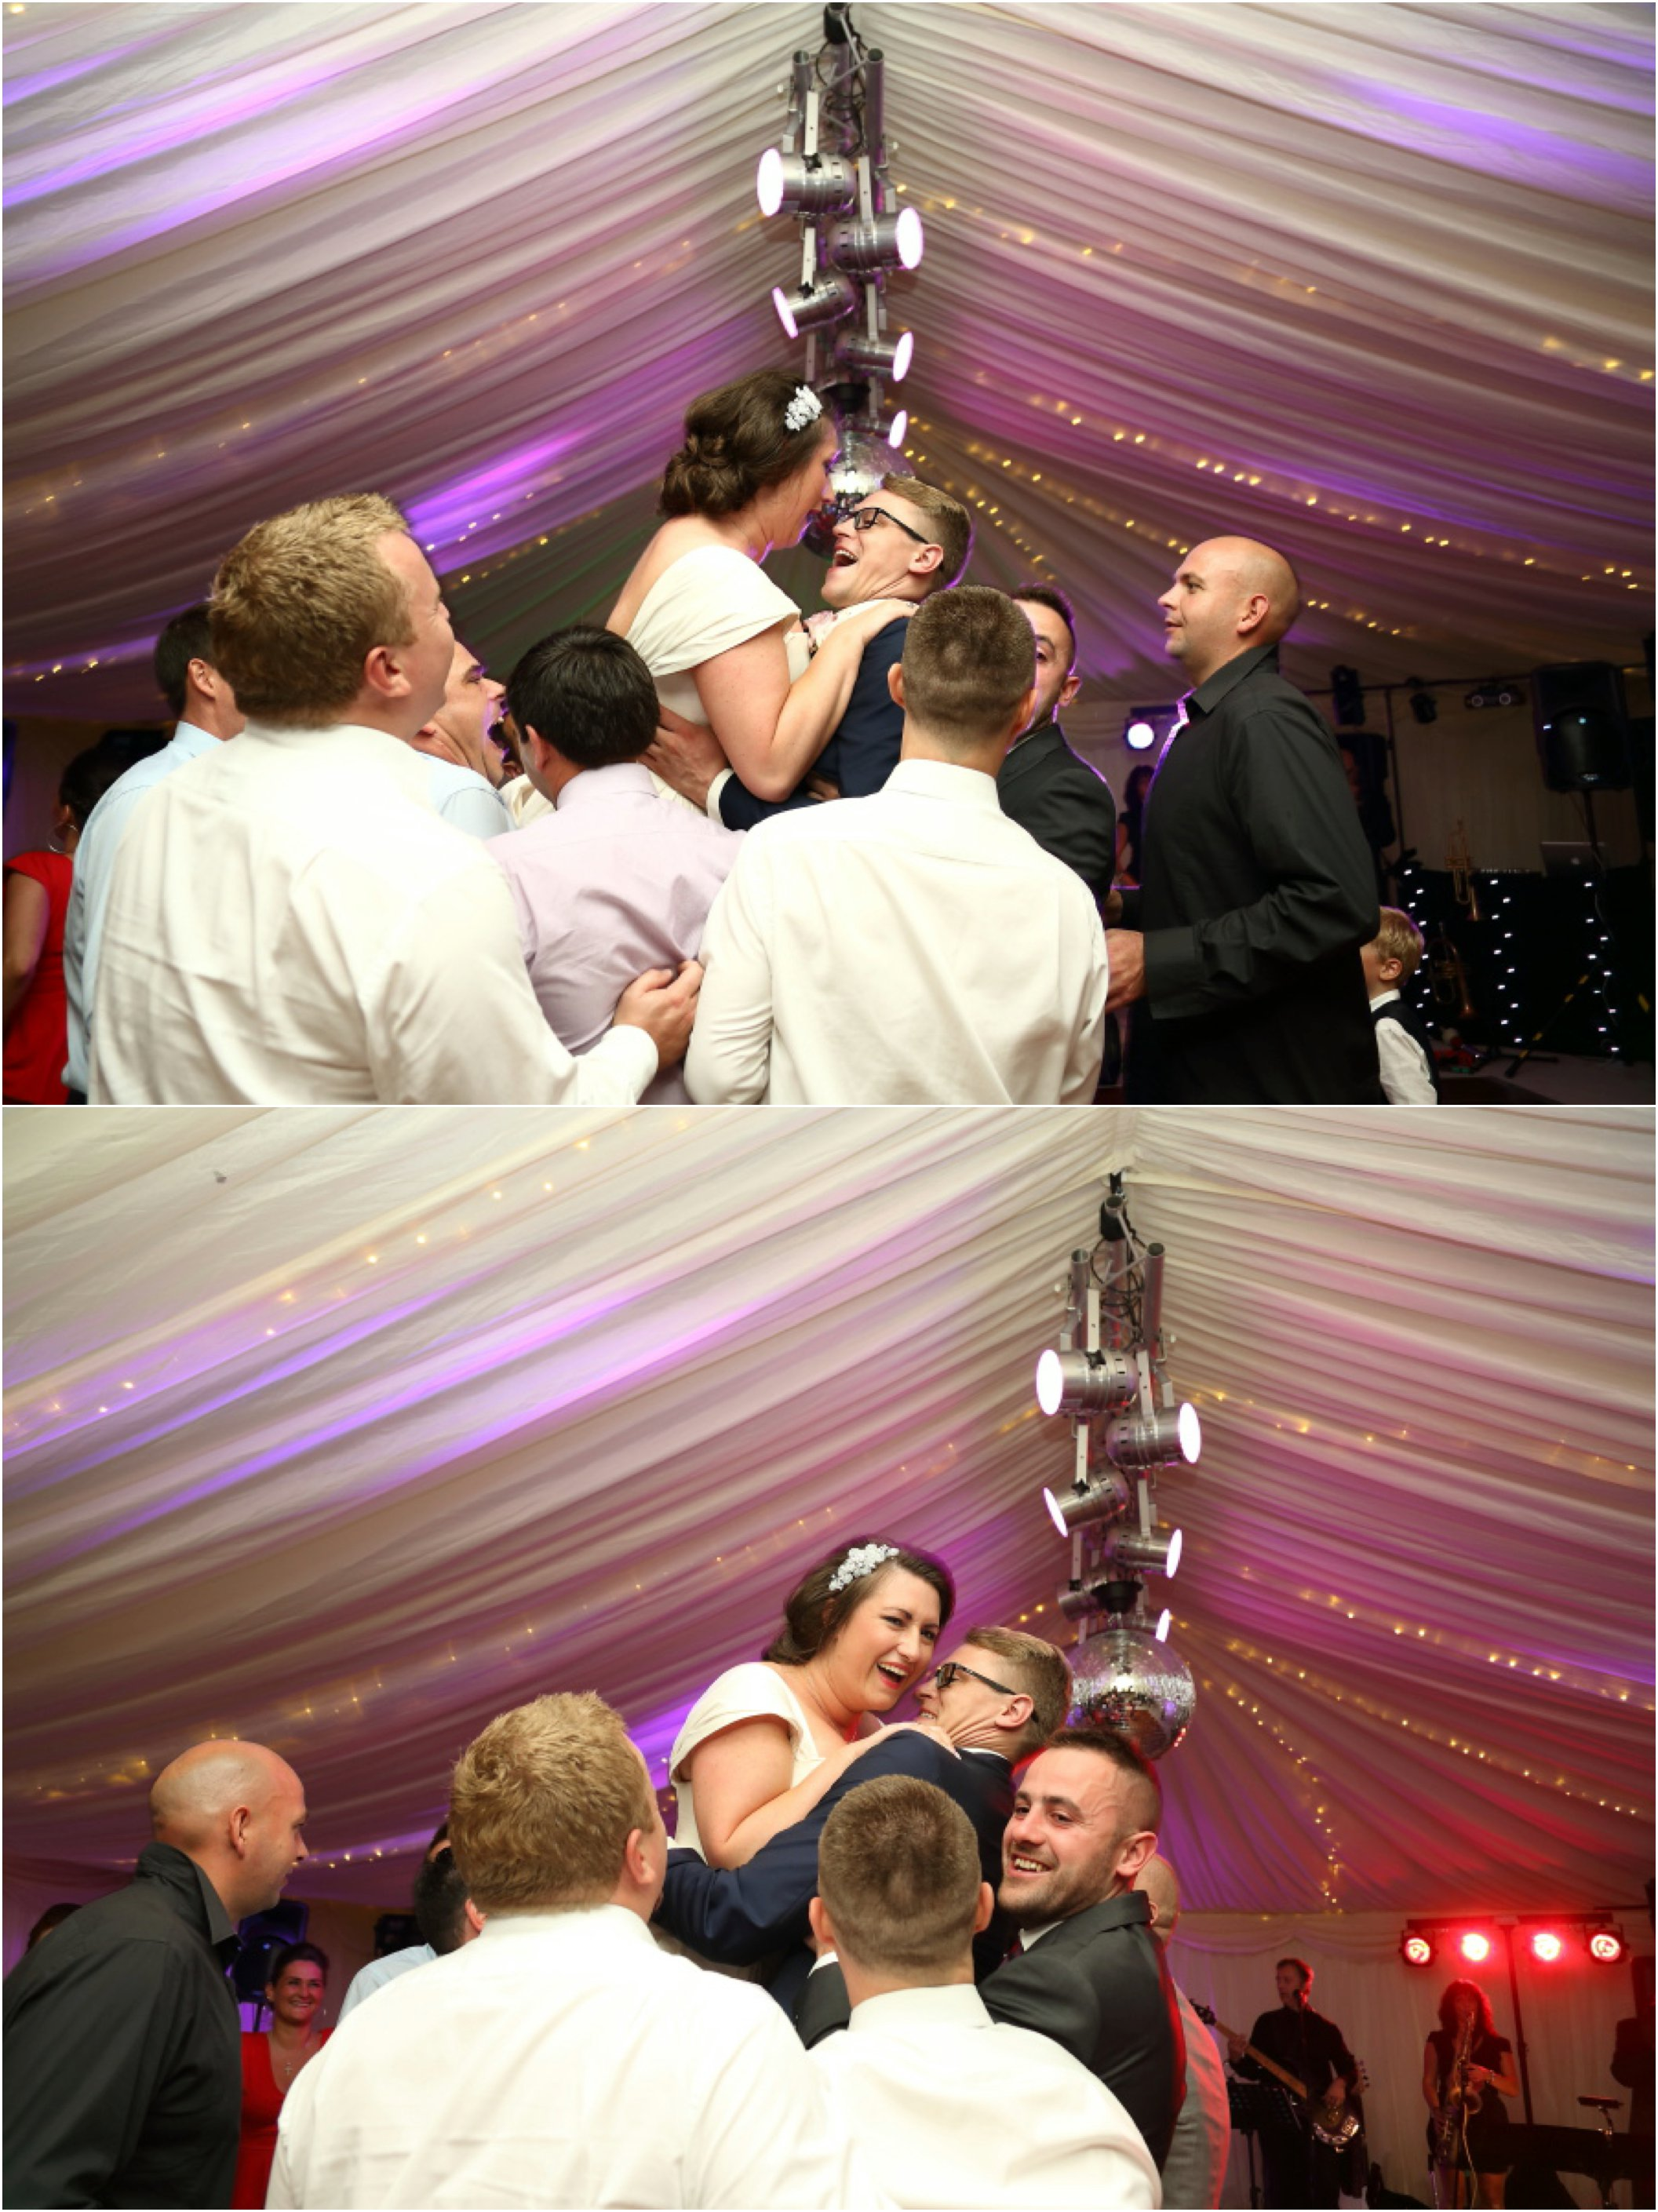 lifting the bride and groom up int he air at fab essex wedding